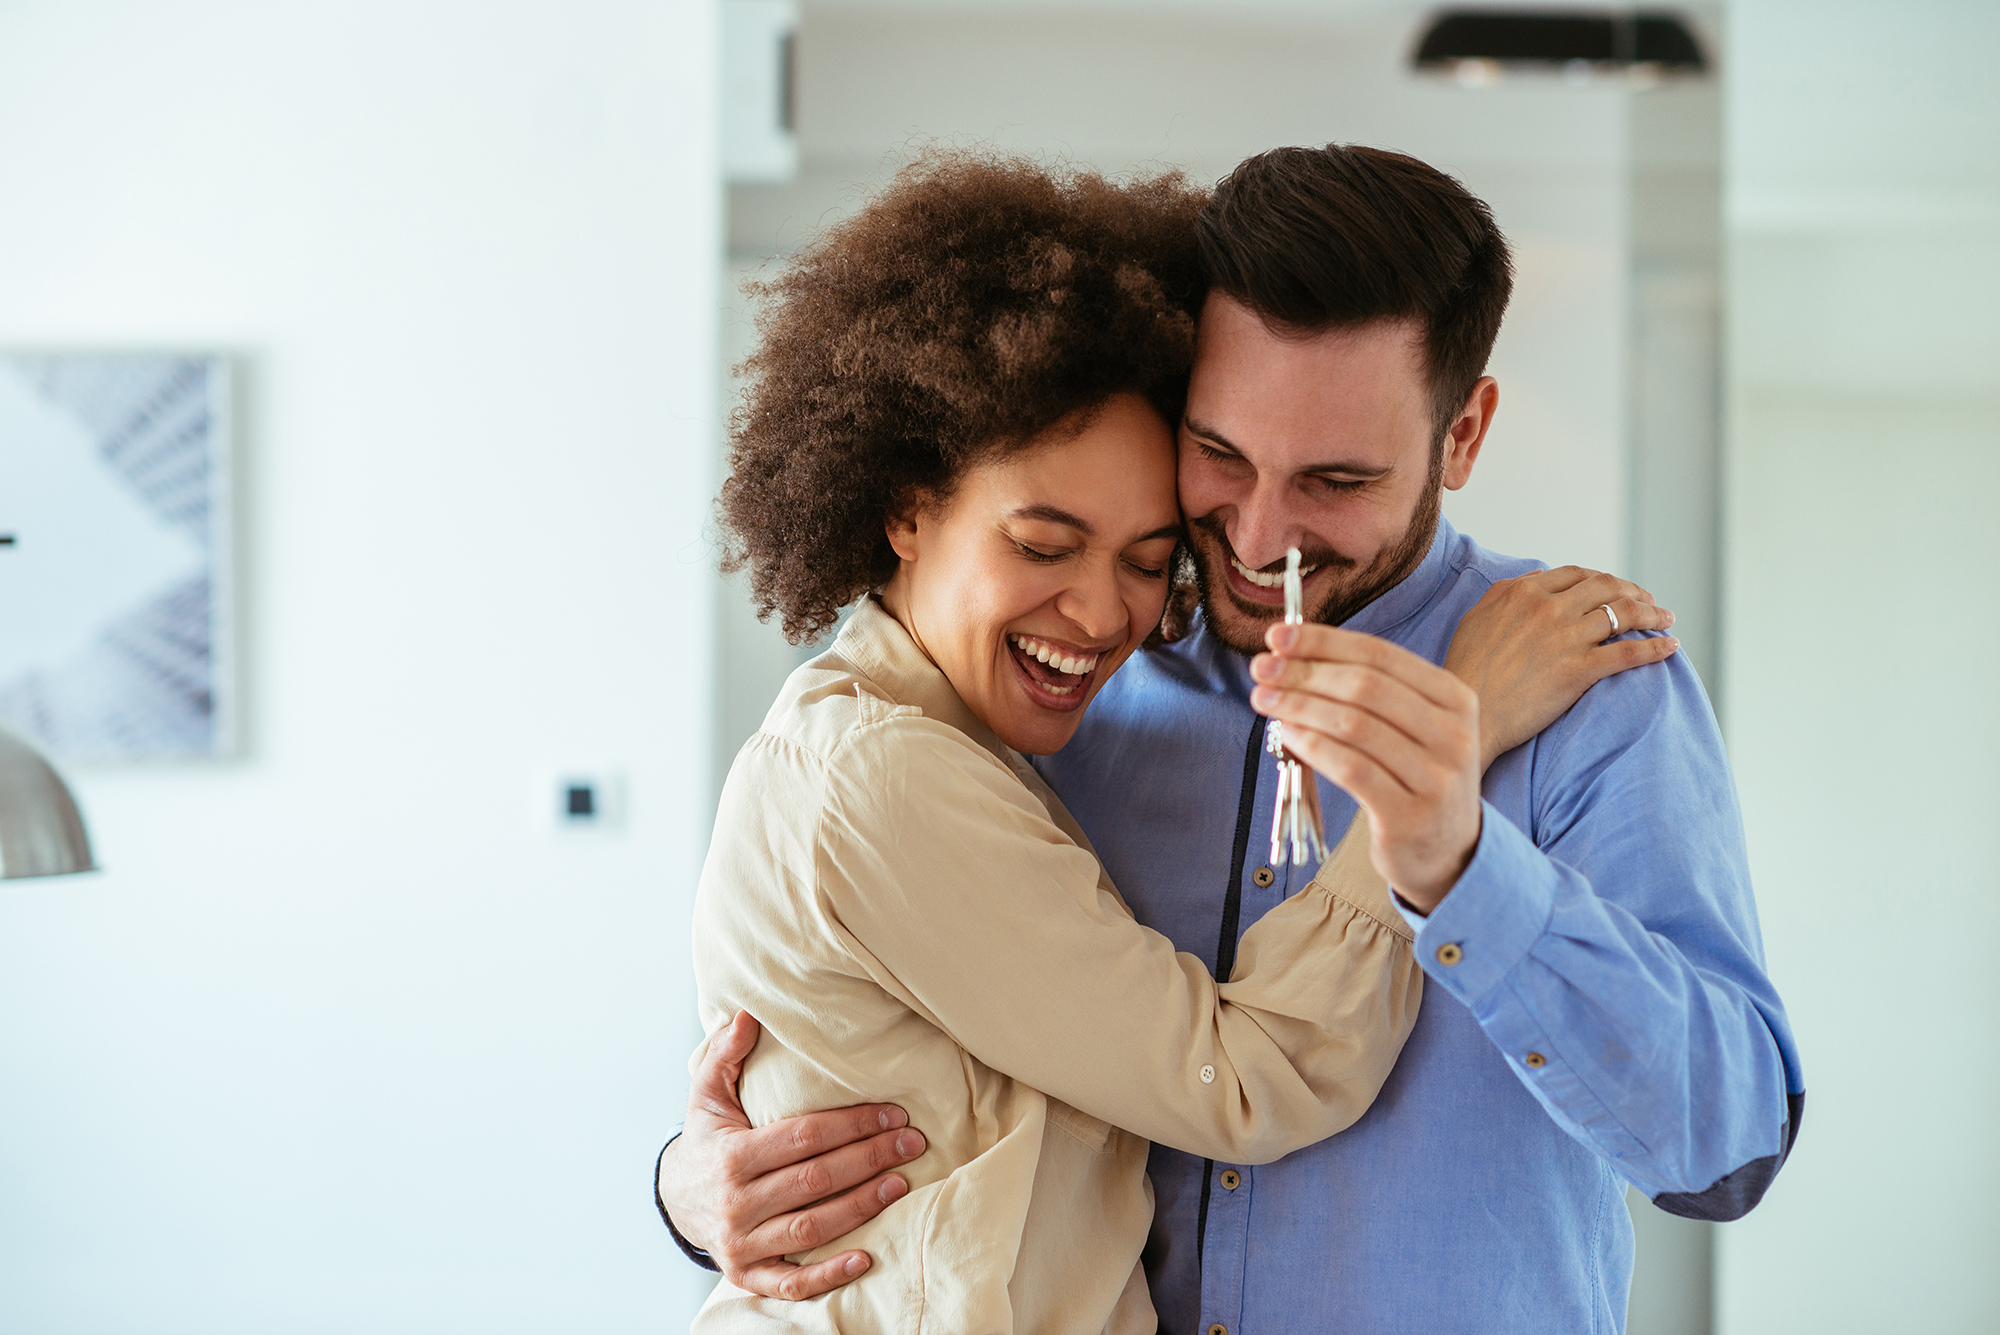 A couple with new house keys. (Image: Shutterstock)